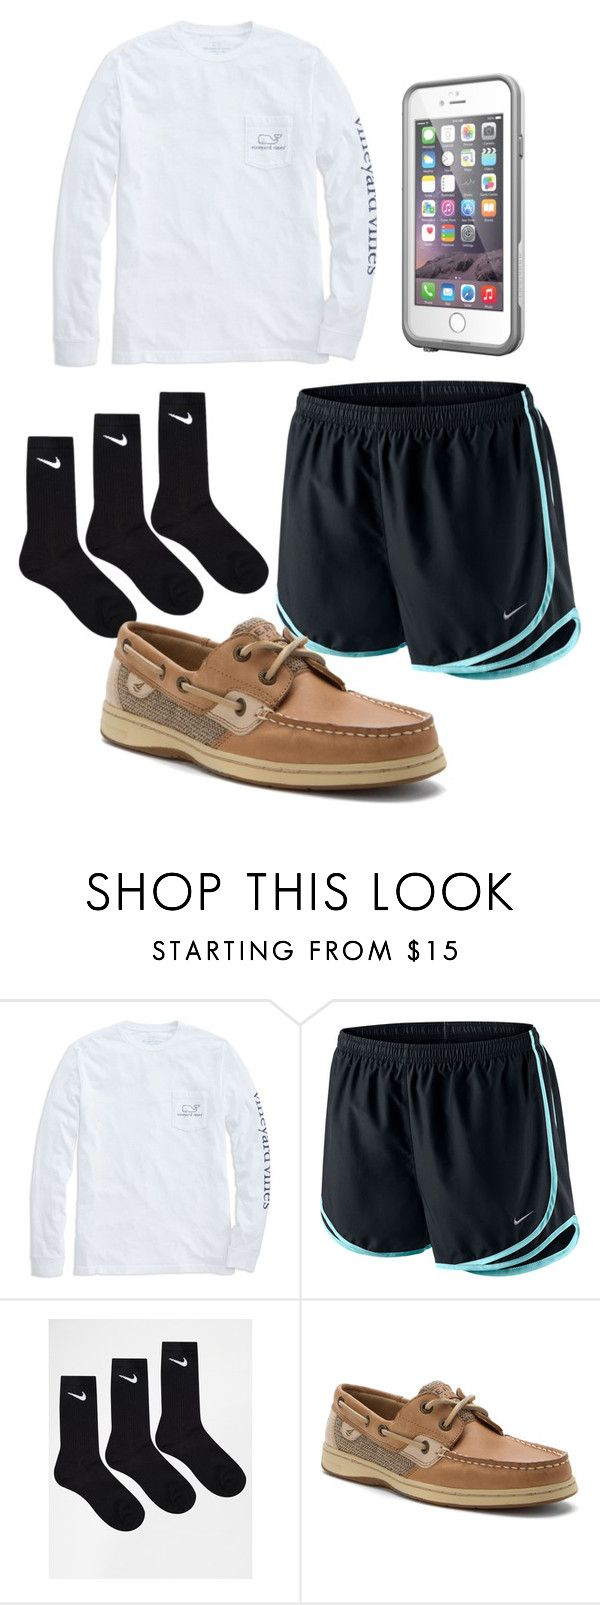 """""""Lazy day"""" by tifanisolano on Polyvore featuring Vineyard Vines, NIKE, Sperry Top-Sider and LifeProof"""